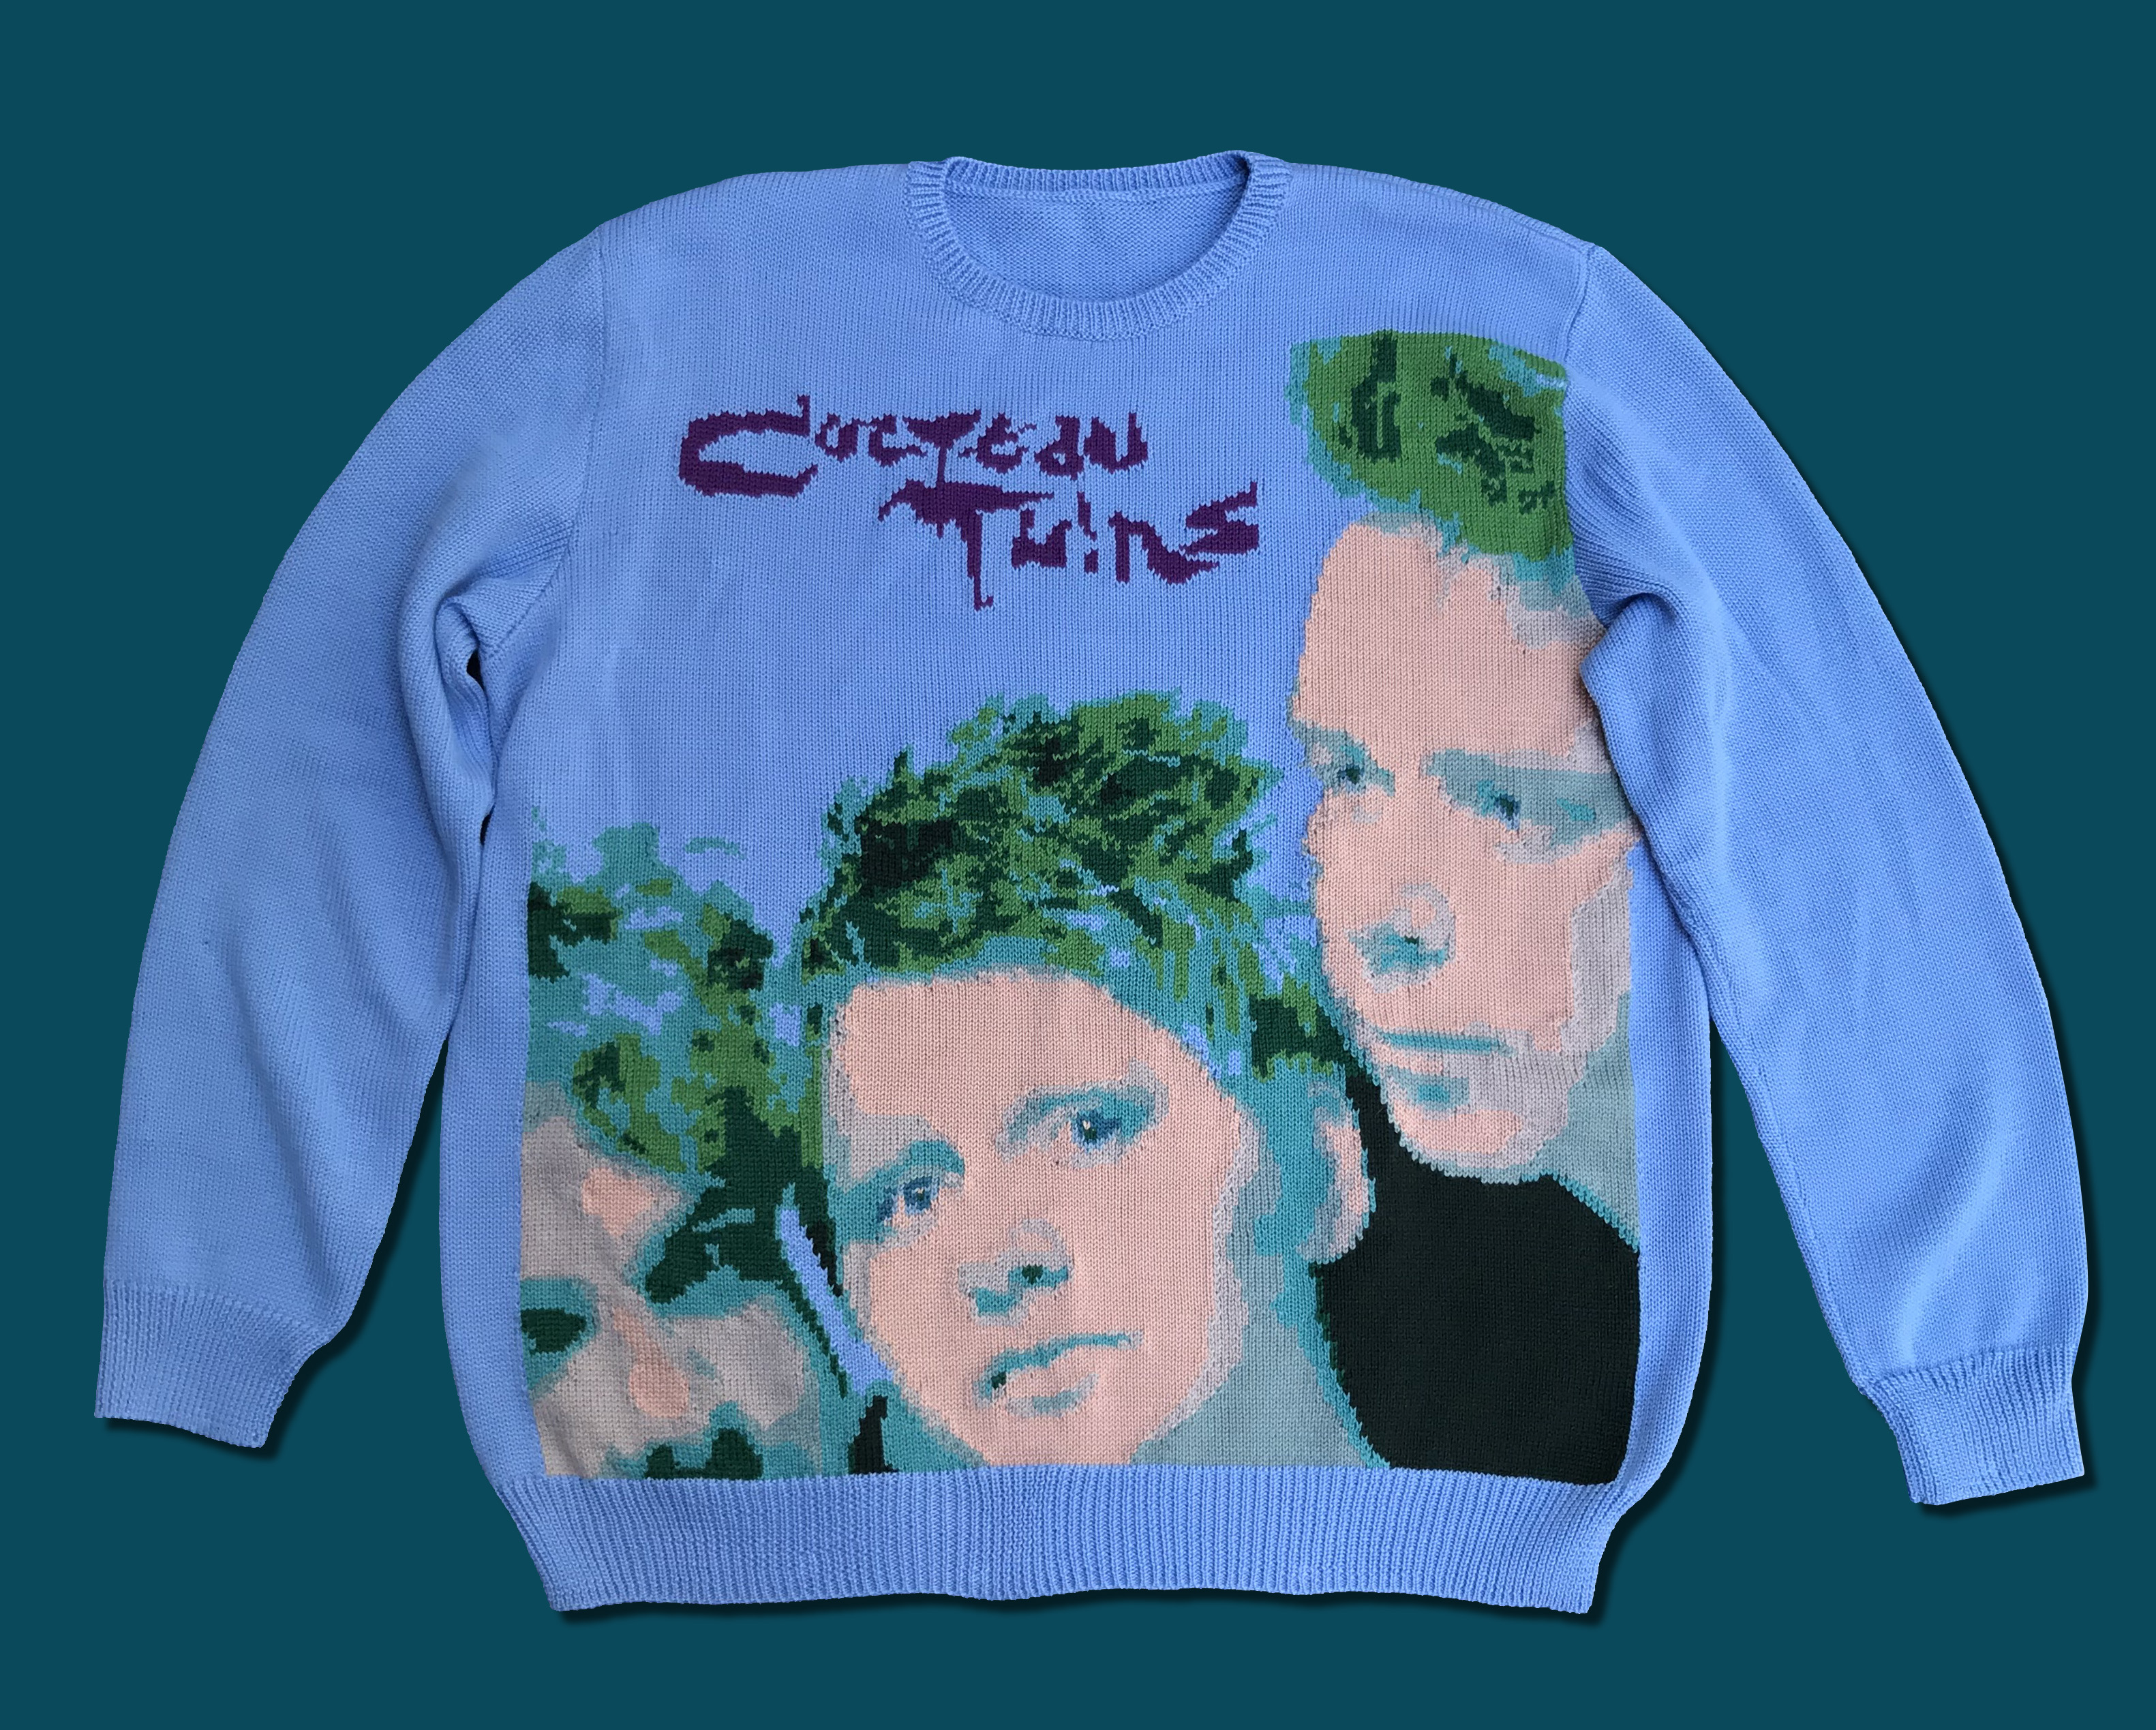 Cocteau Twins handmade sweater